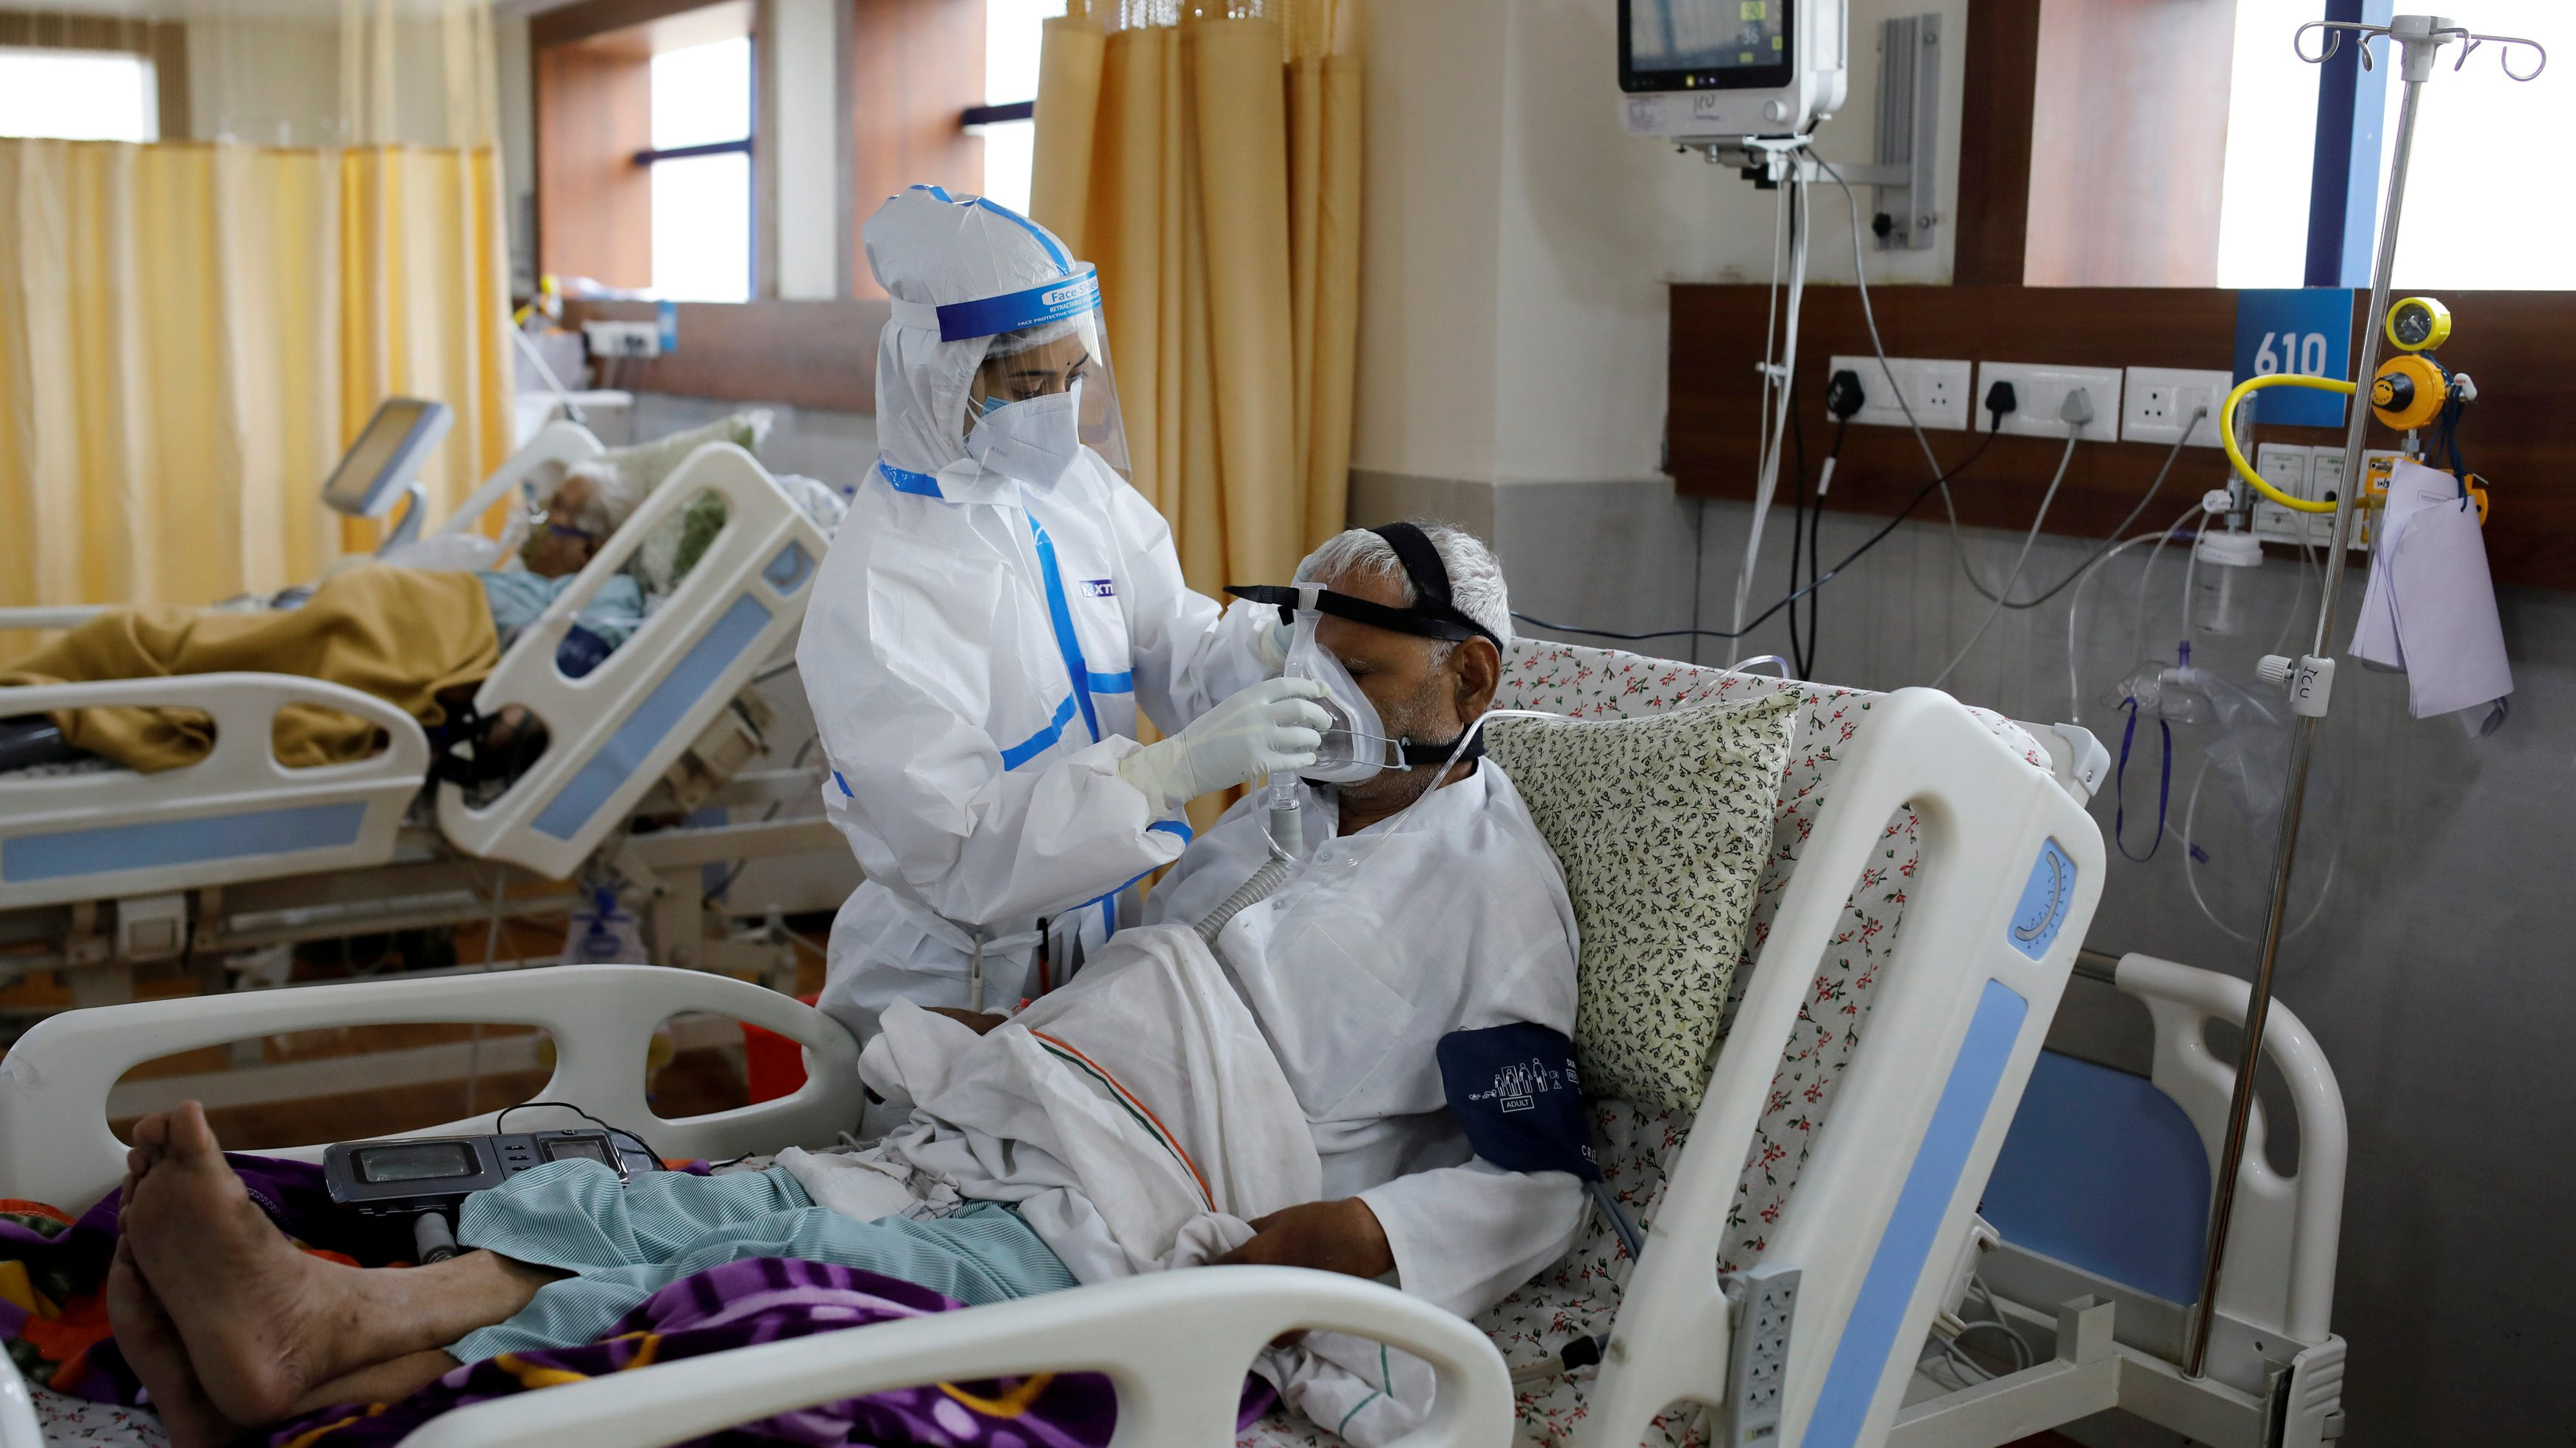 Indians say they needed clout to get Covid-19 ICU beds — Quartz India